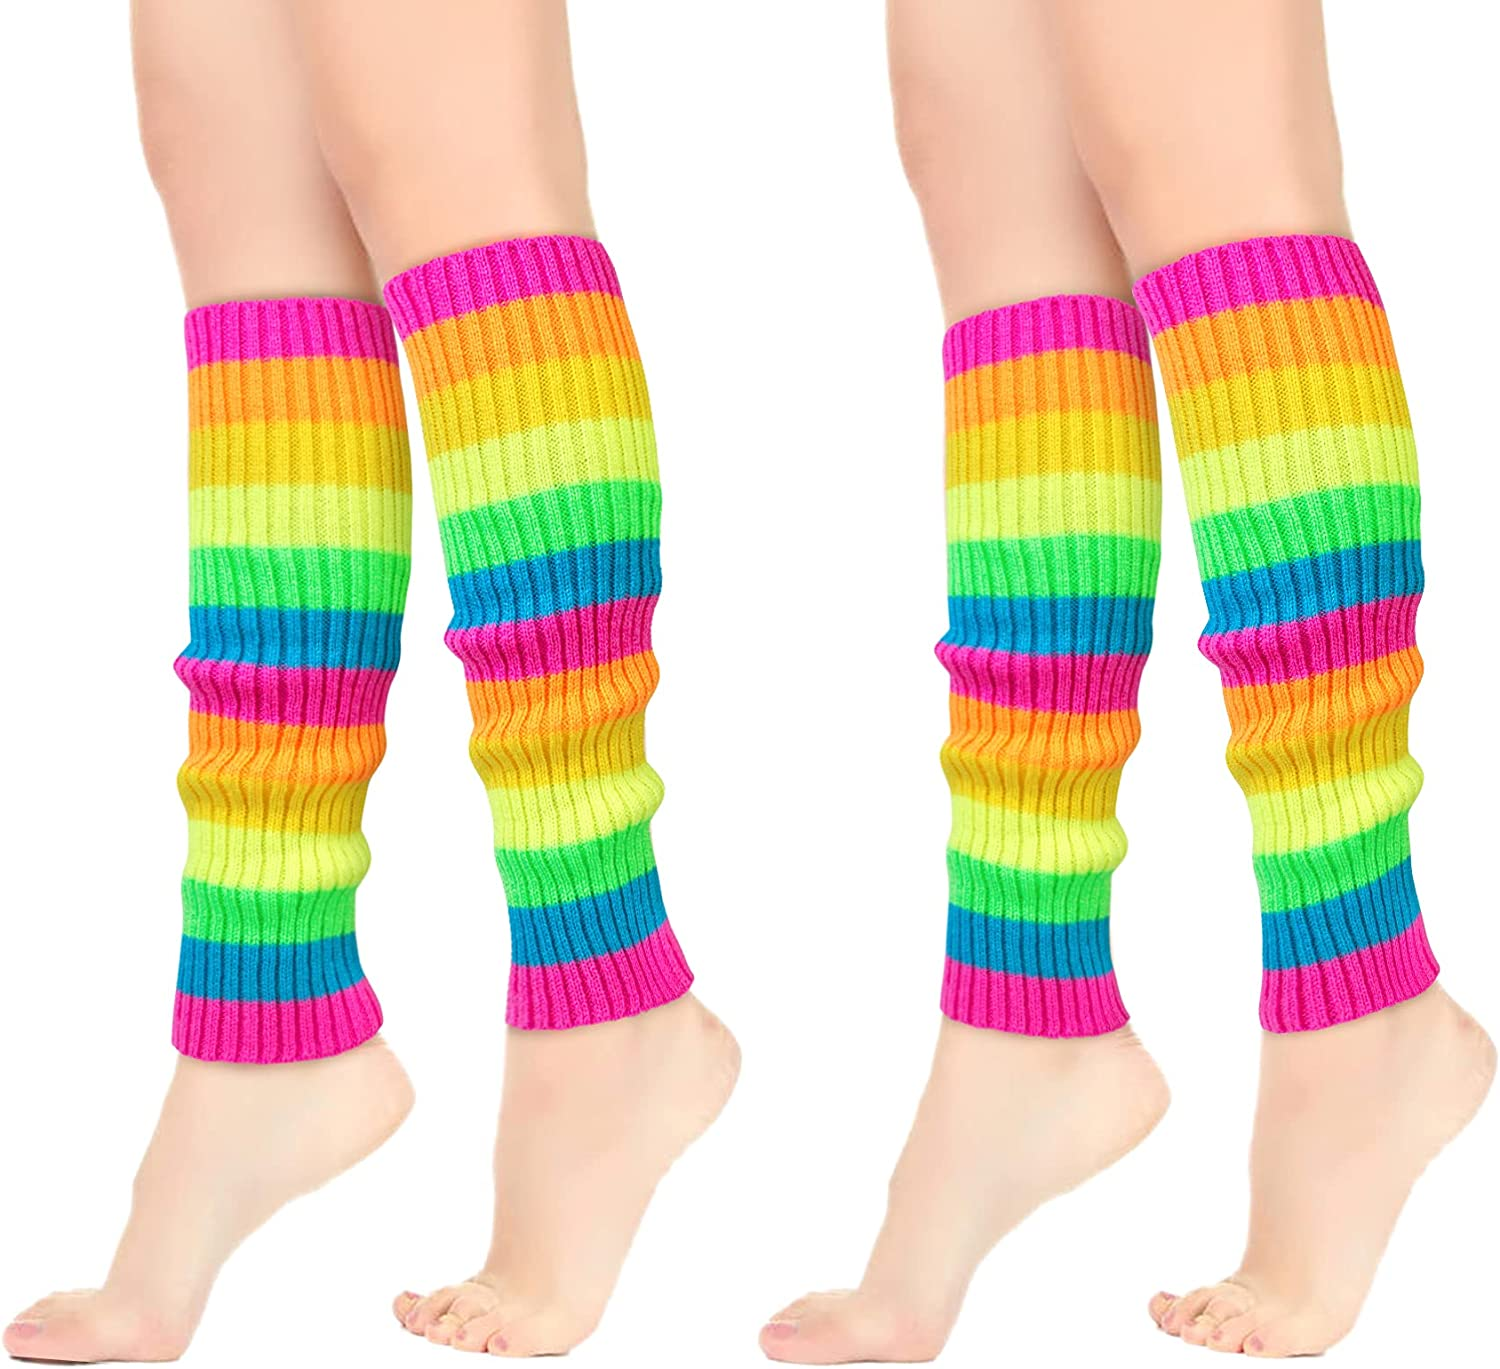 Leg Warmers for Women 80s Neon Knit Ribbed Leg Warmers for Dance Yoga Sports Party Accessories